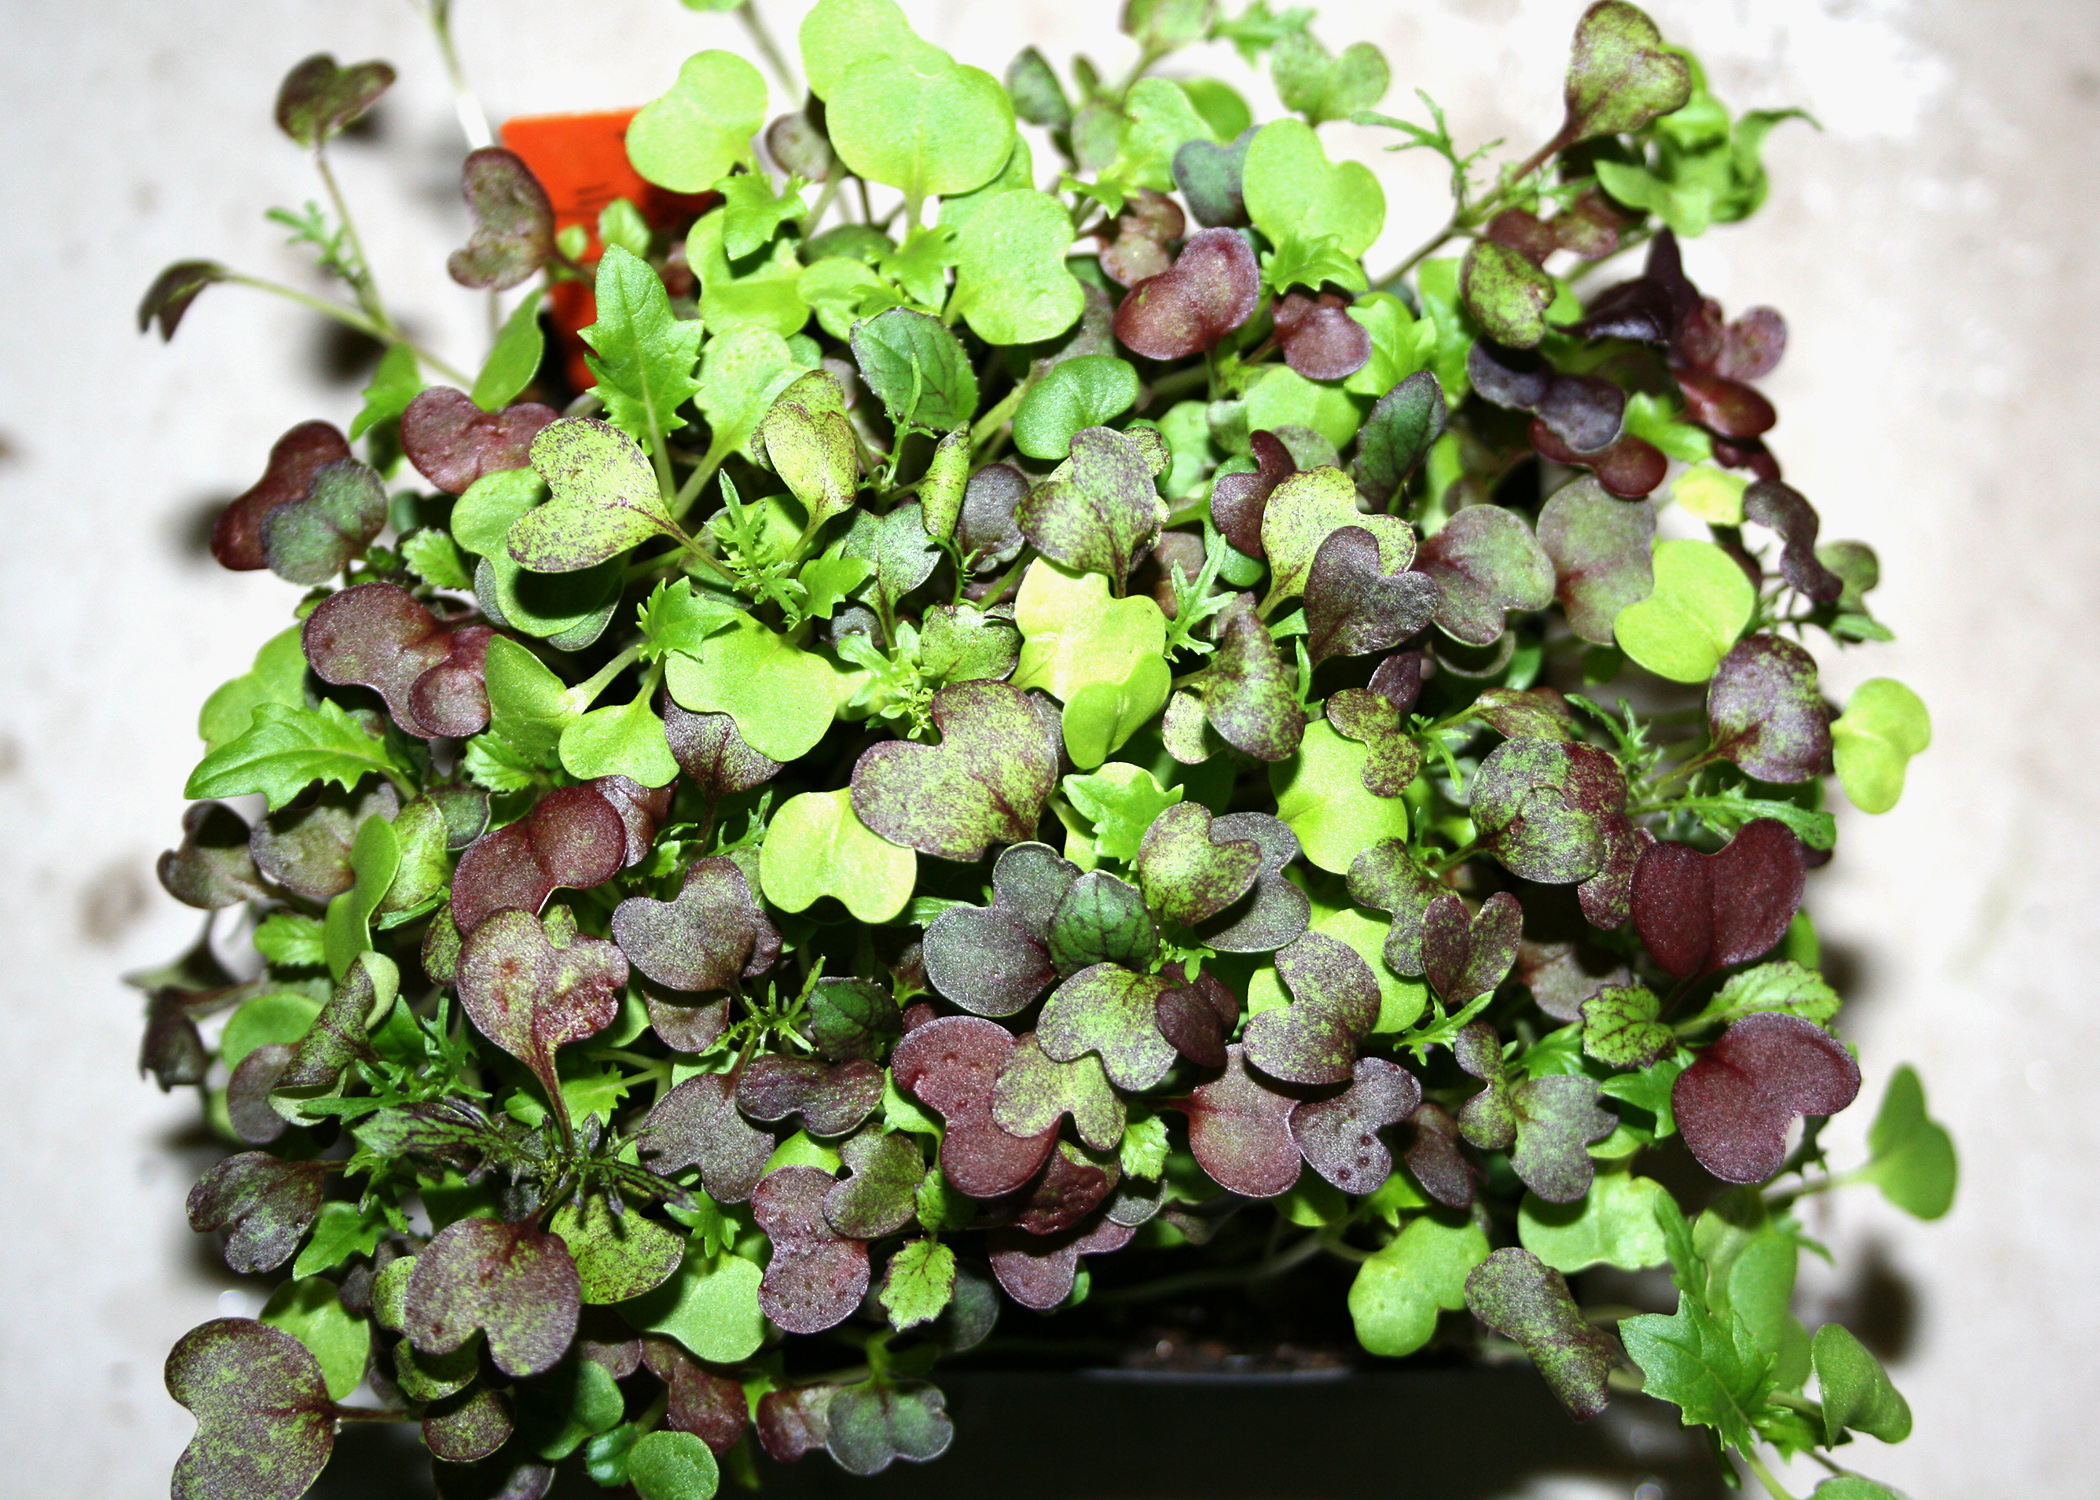 Microgreens Such As The Mix Pictured Are Rich In Phytonutrients And Grow Quickly Indoors With Minimal